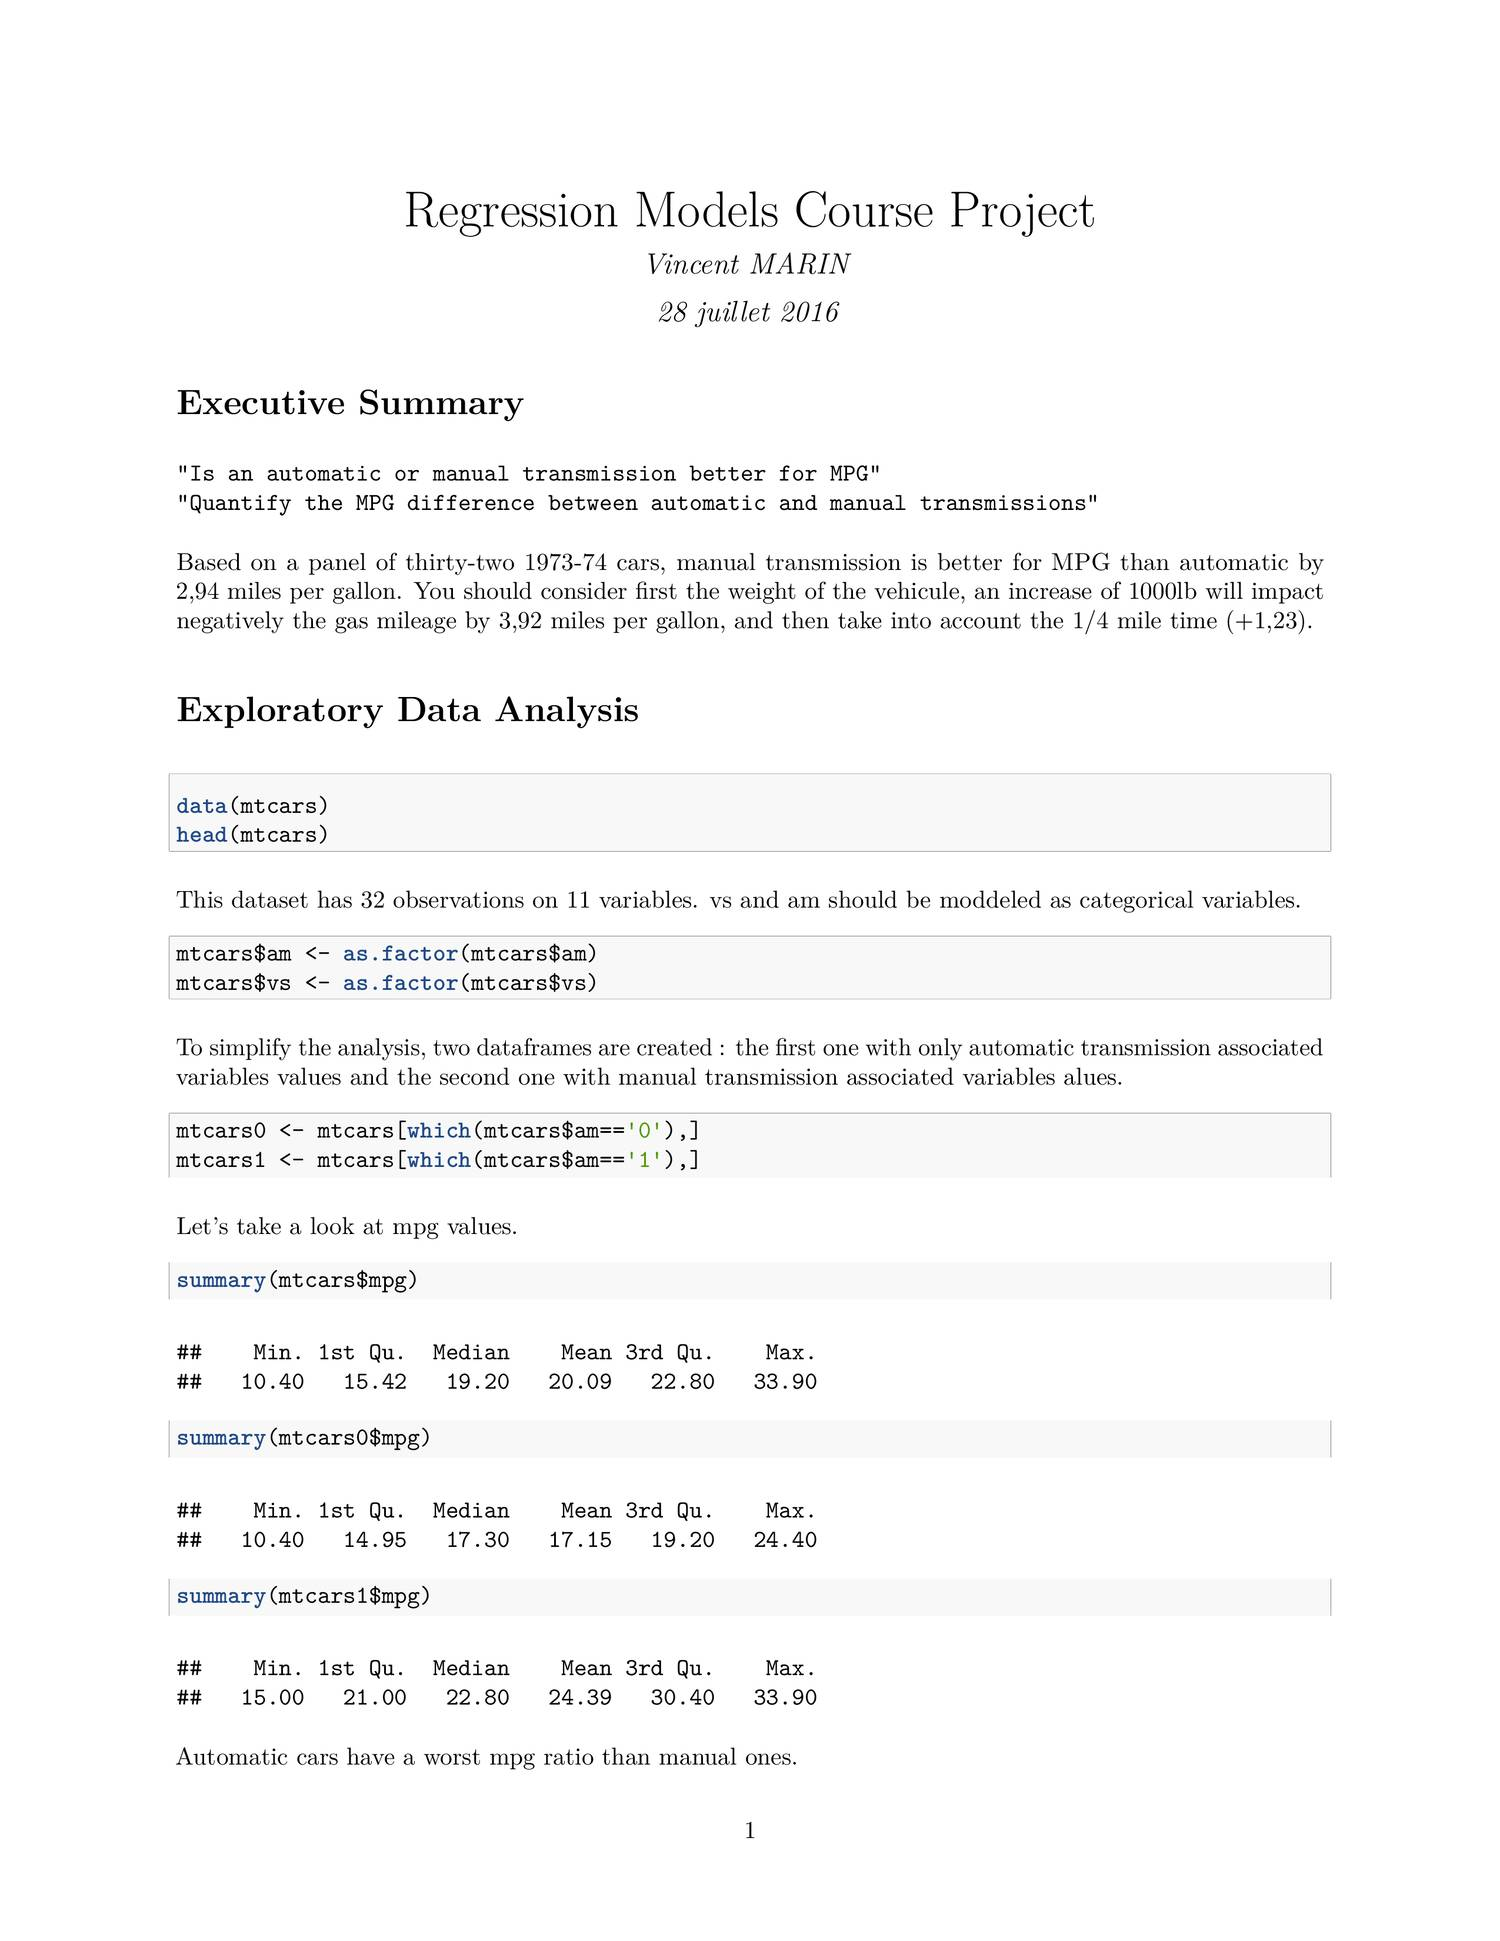 Regression-Models-Course-Project.pdf   DocDroid